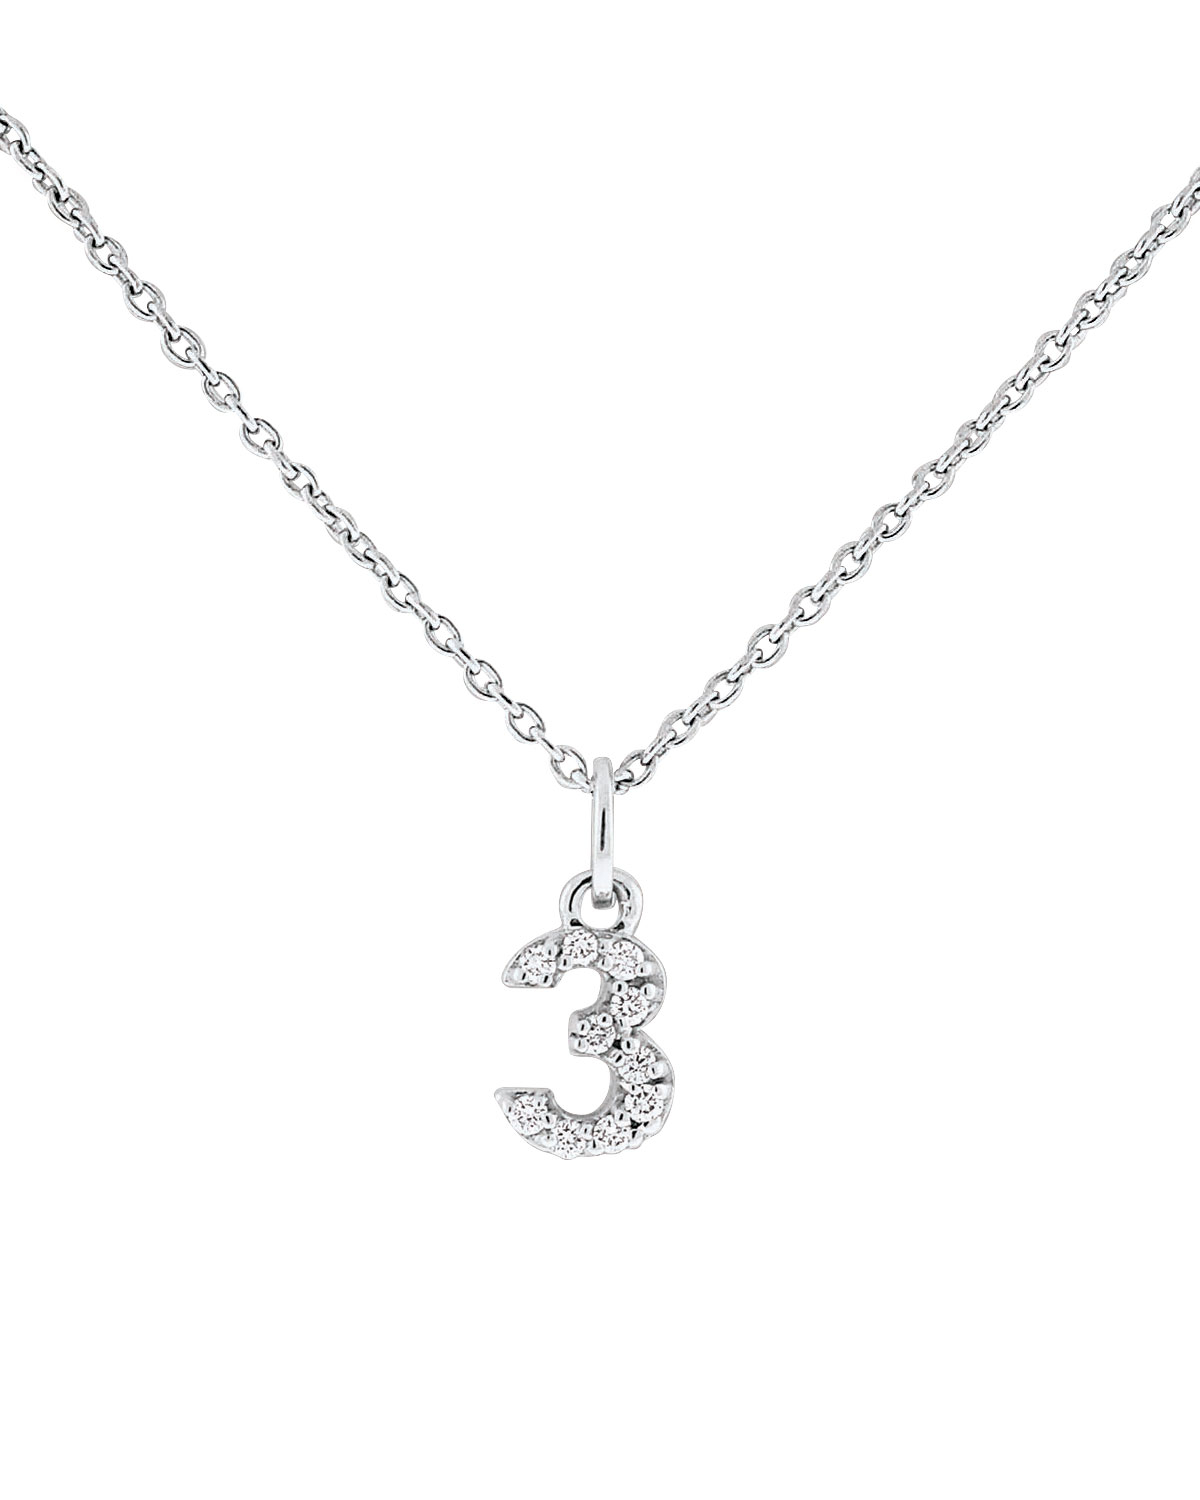 Lyst kc designs diamond number necklace in metallic gallery mozeypictures Image collections